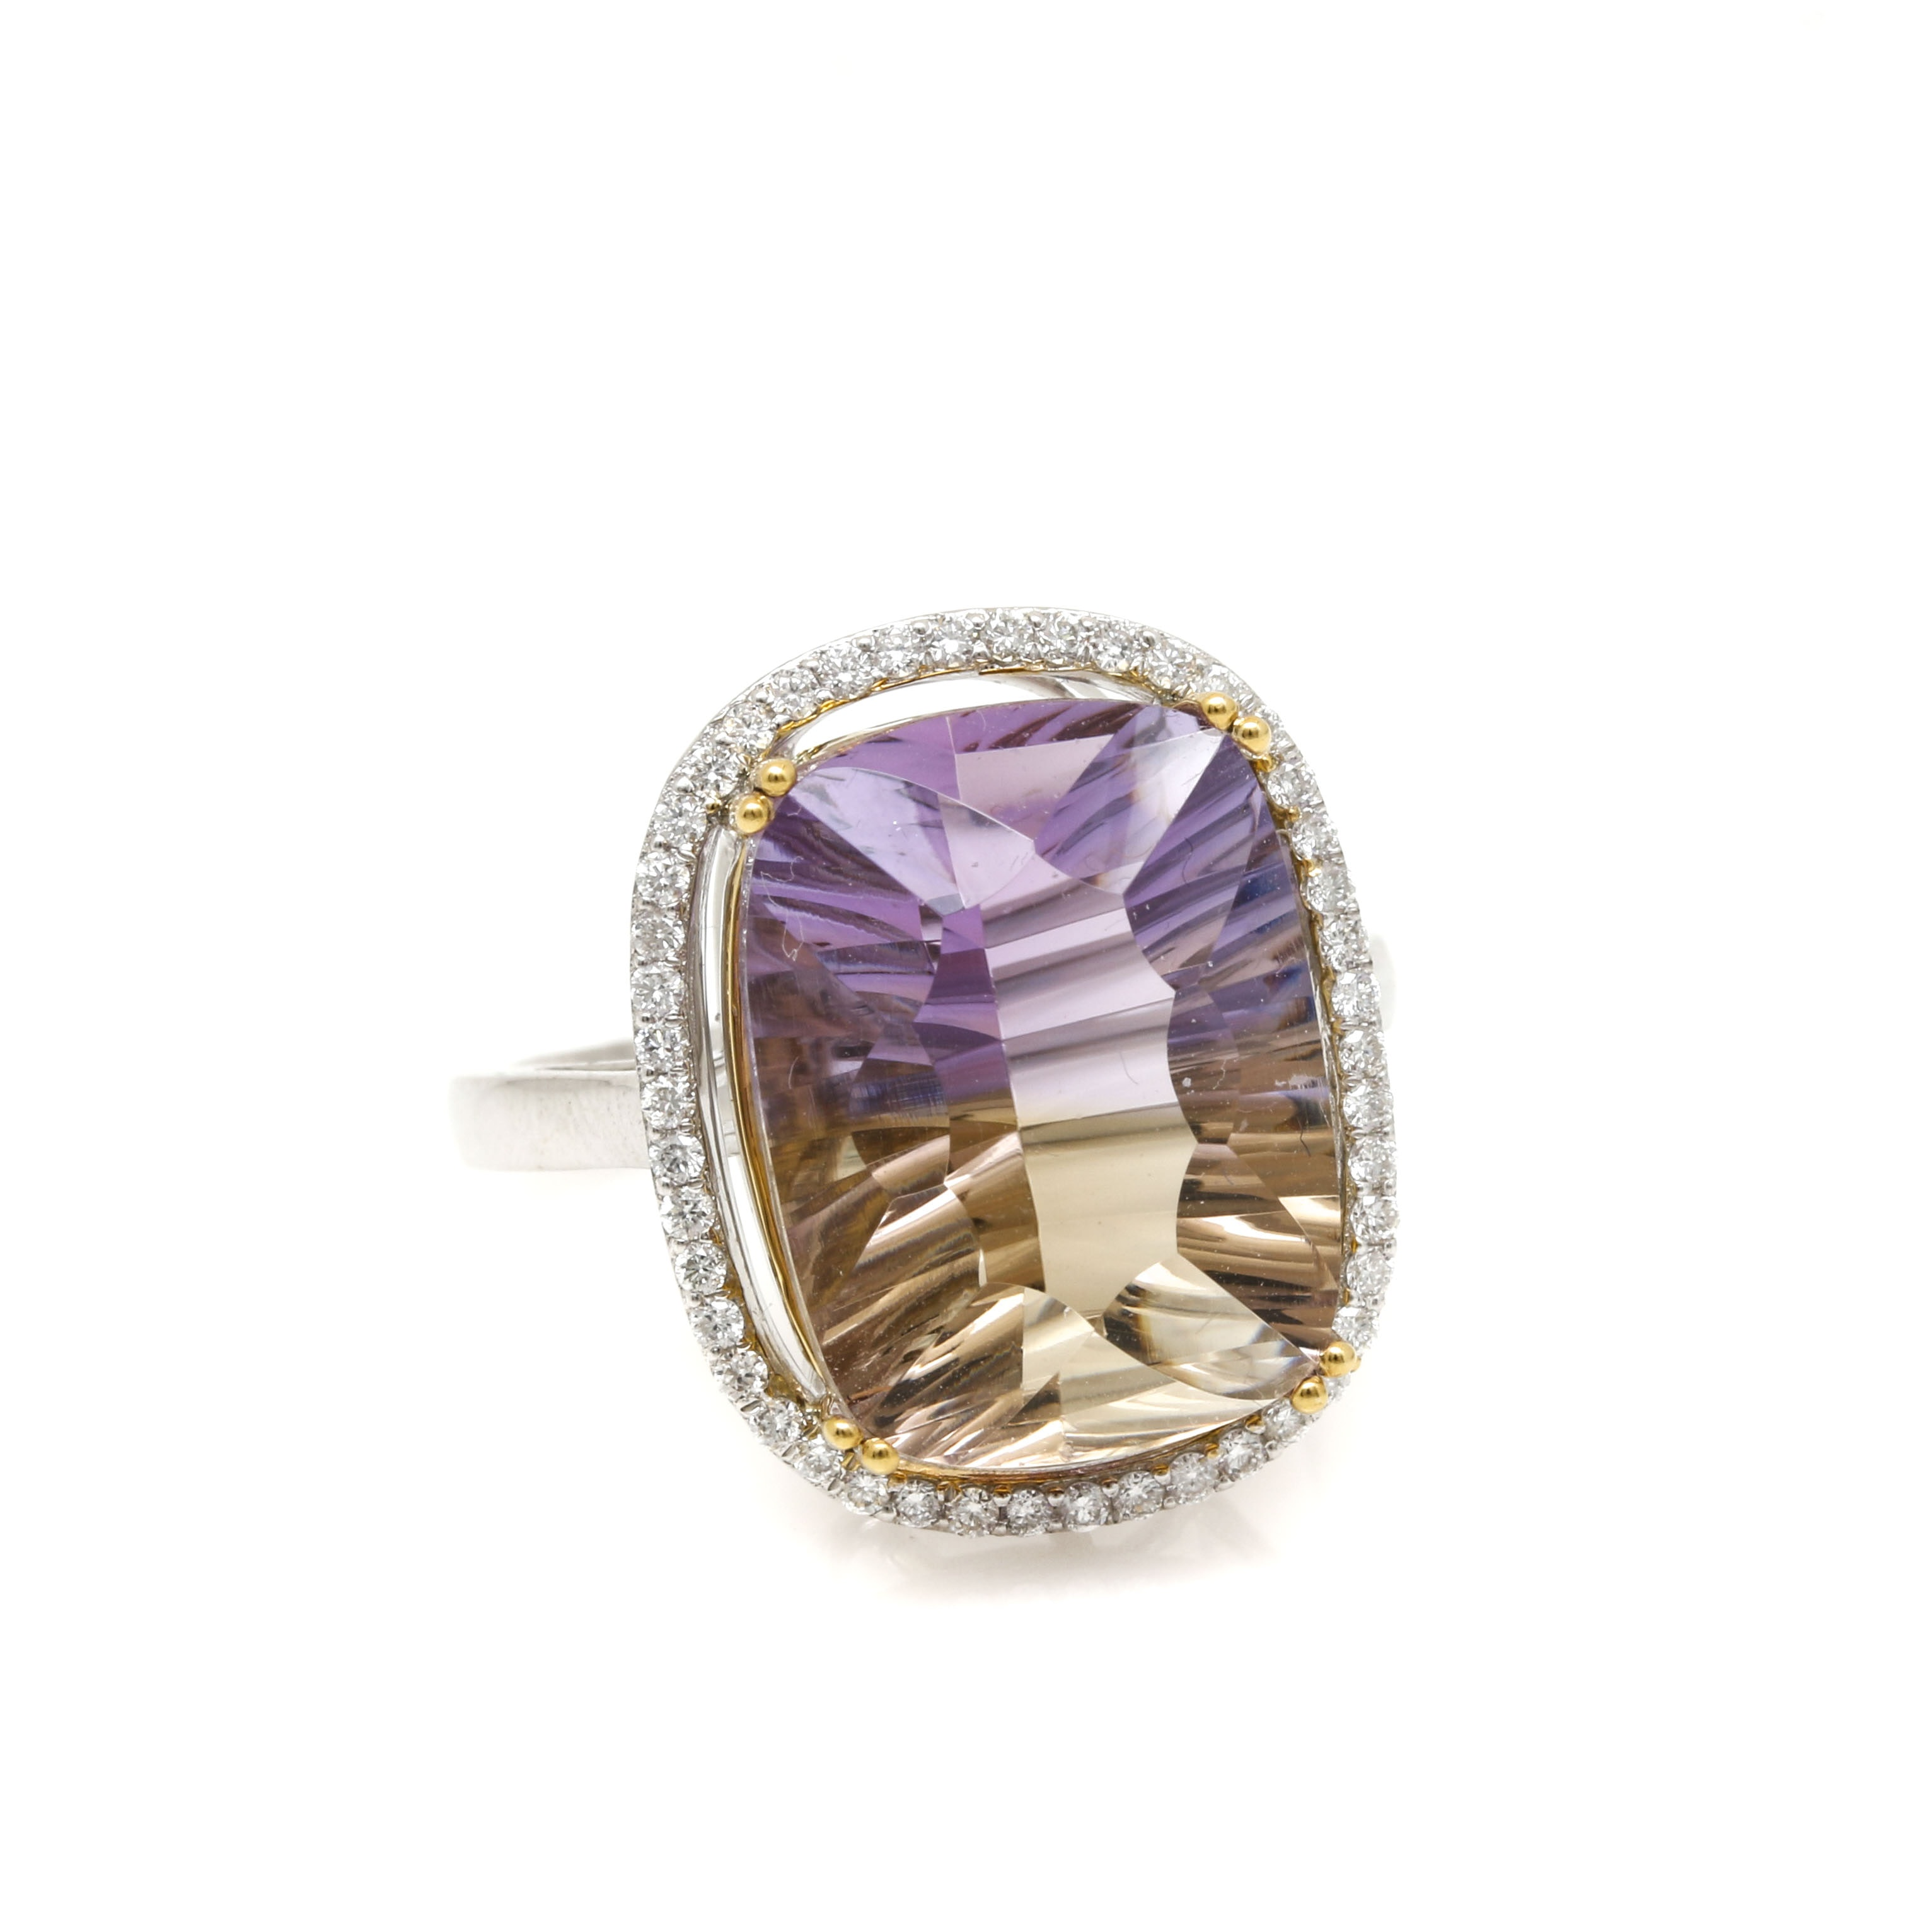 14K White Gold 9.43 CT Ametrine and Diamond Ring With Yellow Gold Accents